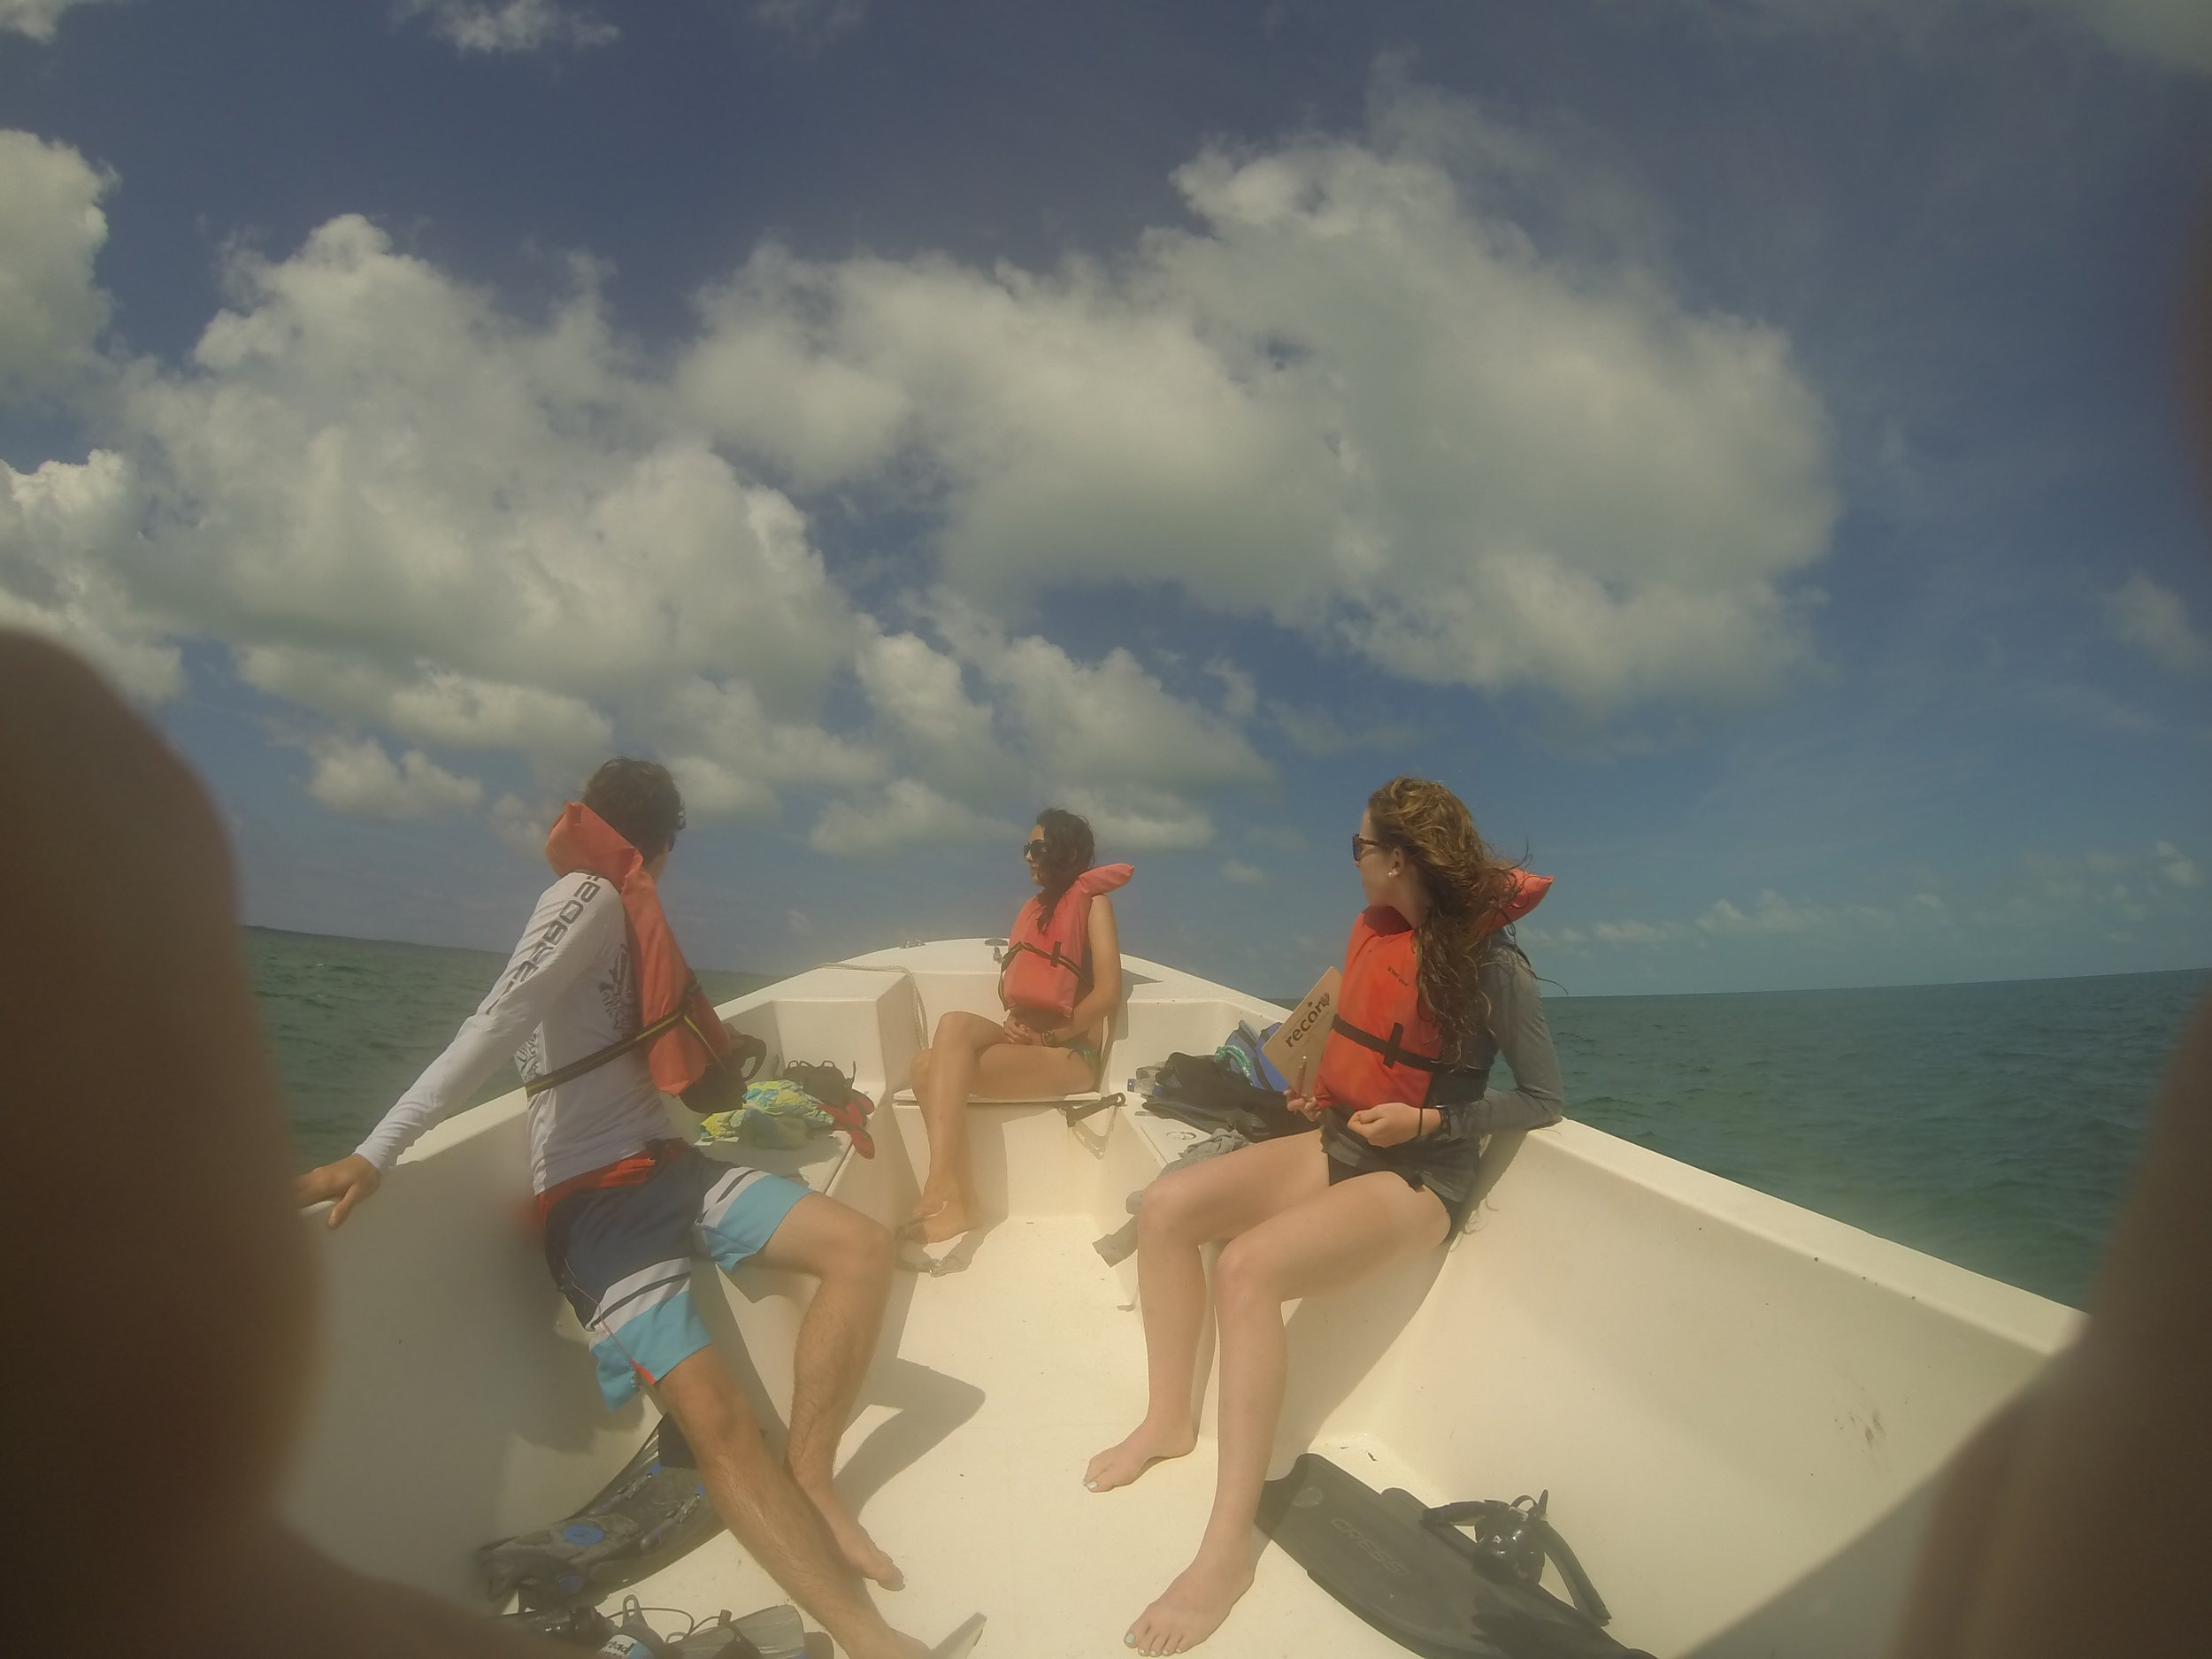 Students out on a boat on their way to the patch reefs